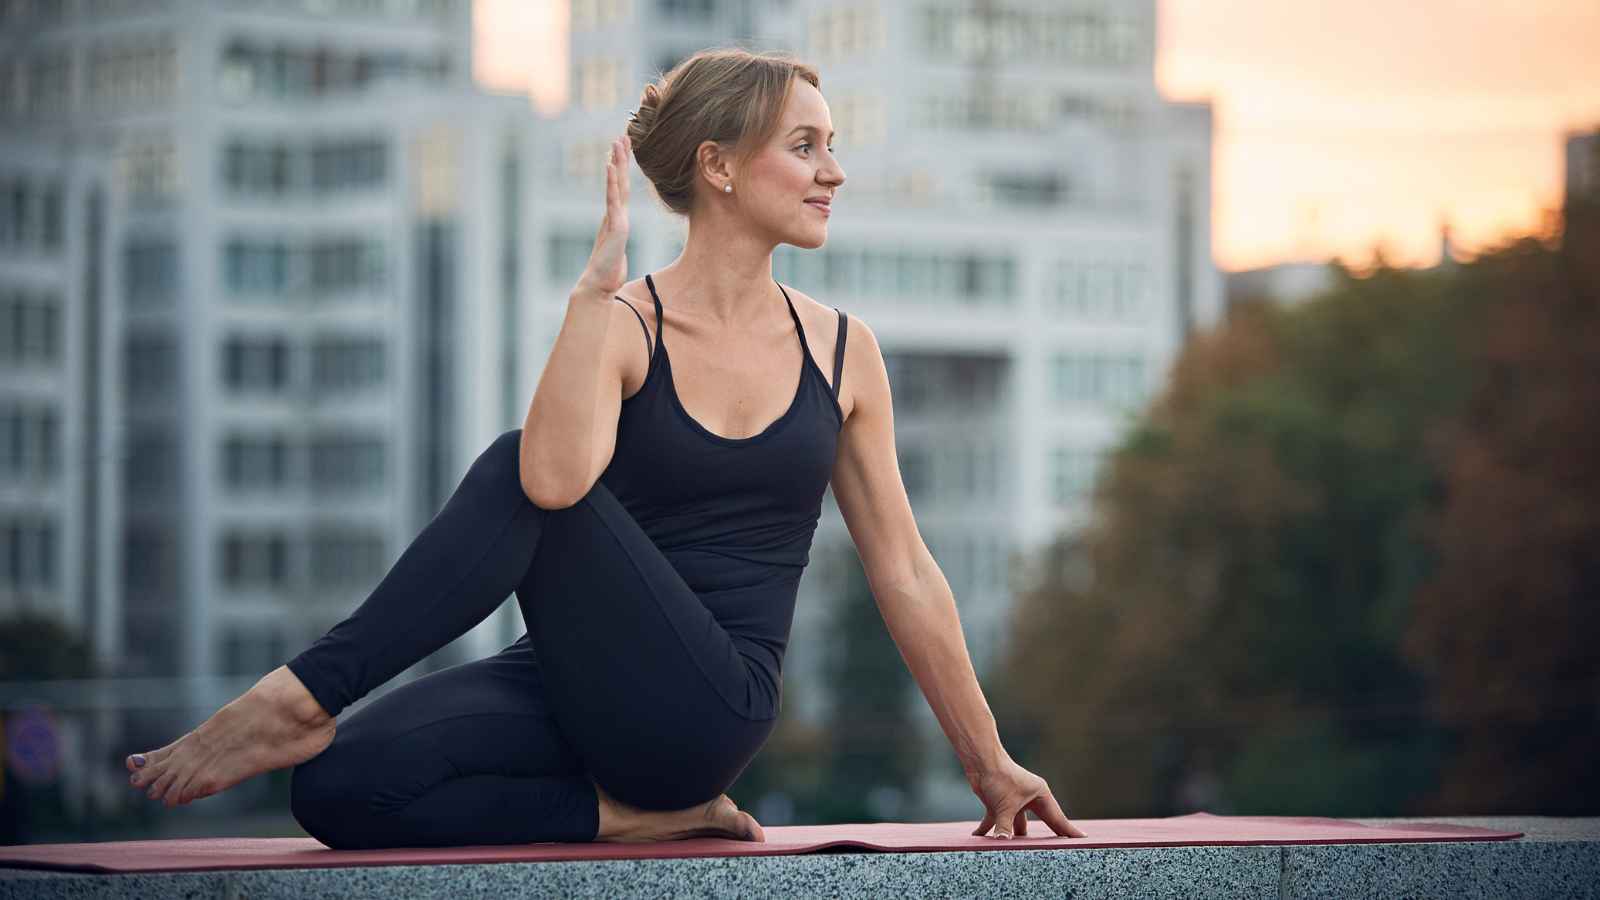 Yoga student practicing Half Lord of the Fishes Pose (Ardha Matsyendrasana) and the yogic principle of listening to your body